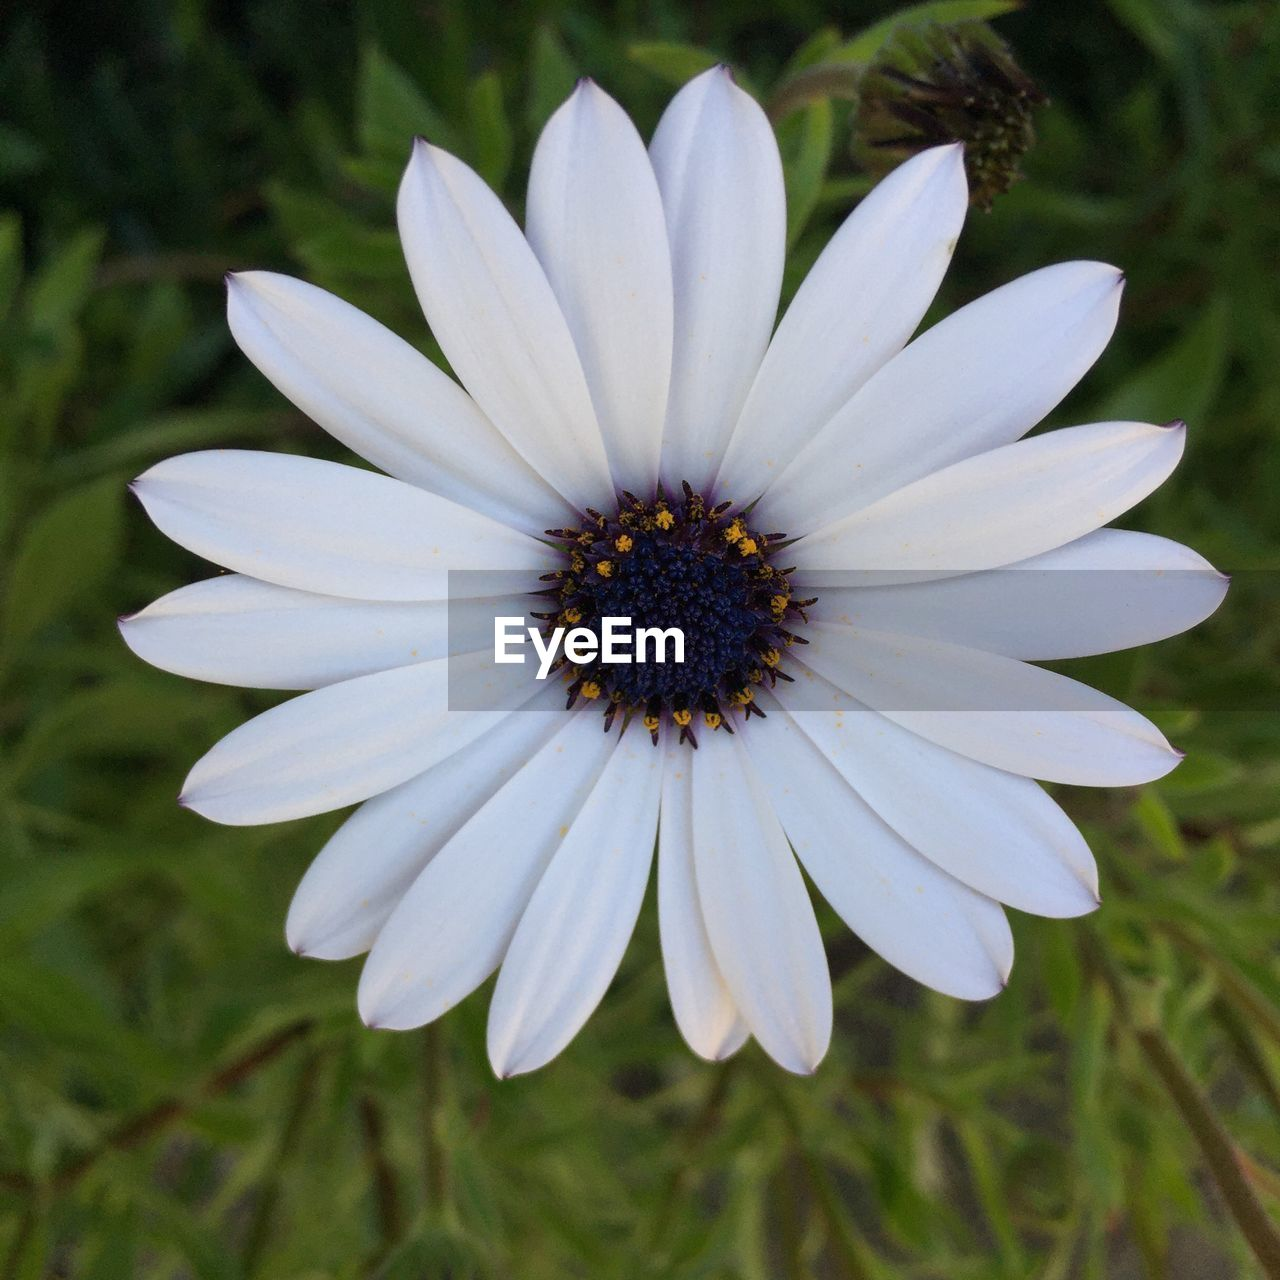 flowering plant, flower, fragility, vulnerability, freshness, plant, petal, flower head, inflorescence, beauty in nature, growth, close-up, focus on foreground, white color, pollen, nature, no people, osteospermum, day, gazania